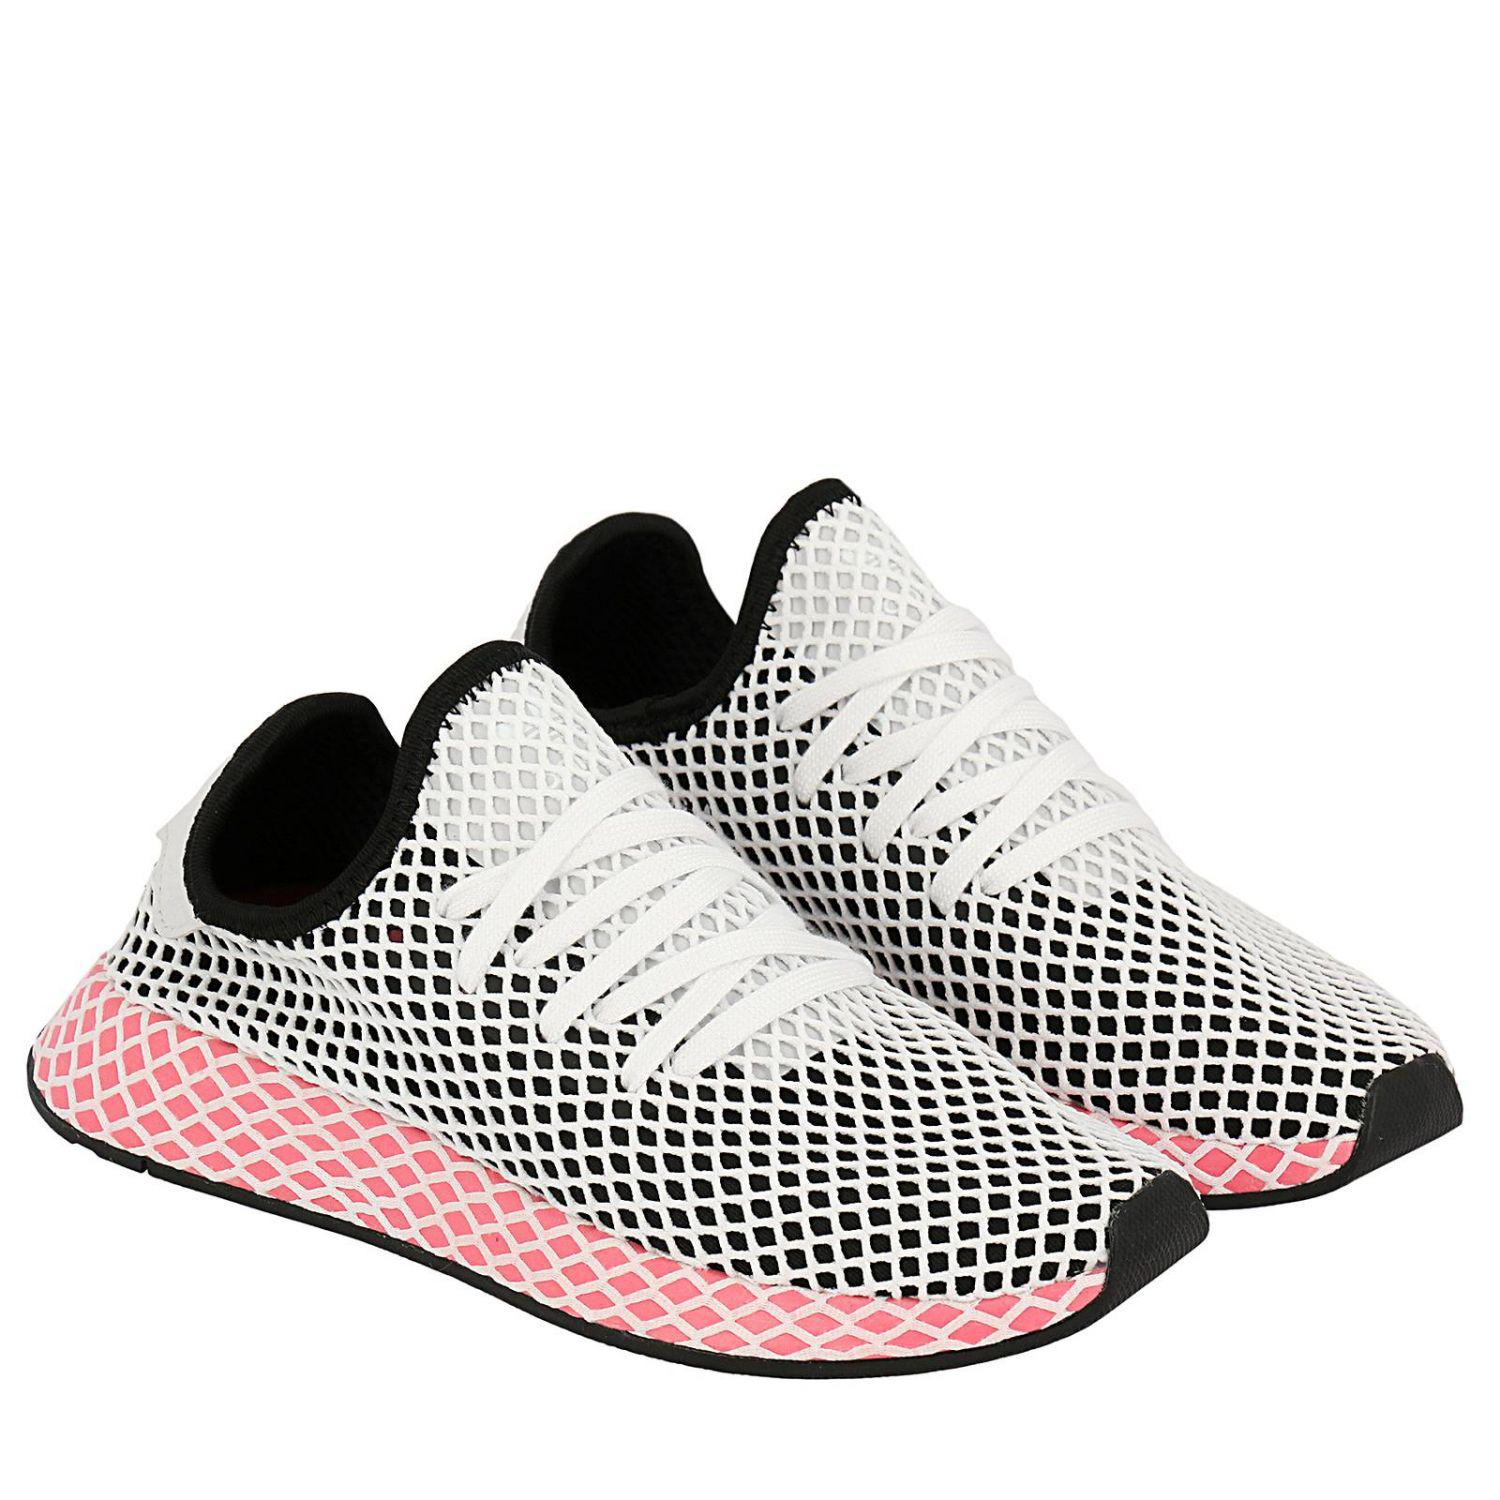 adidas sneakers with net Shop Clothing